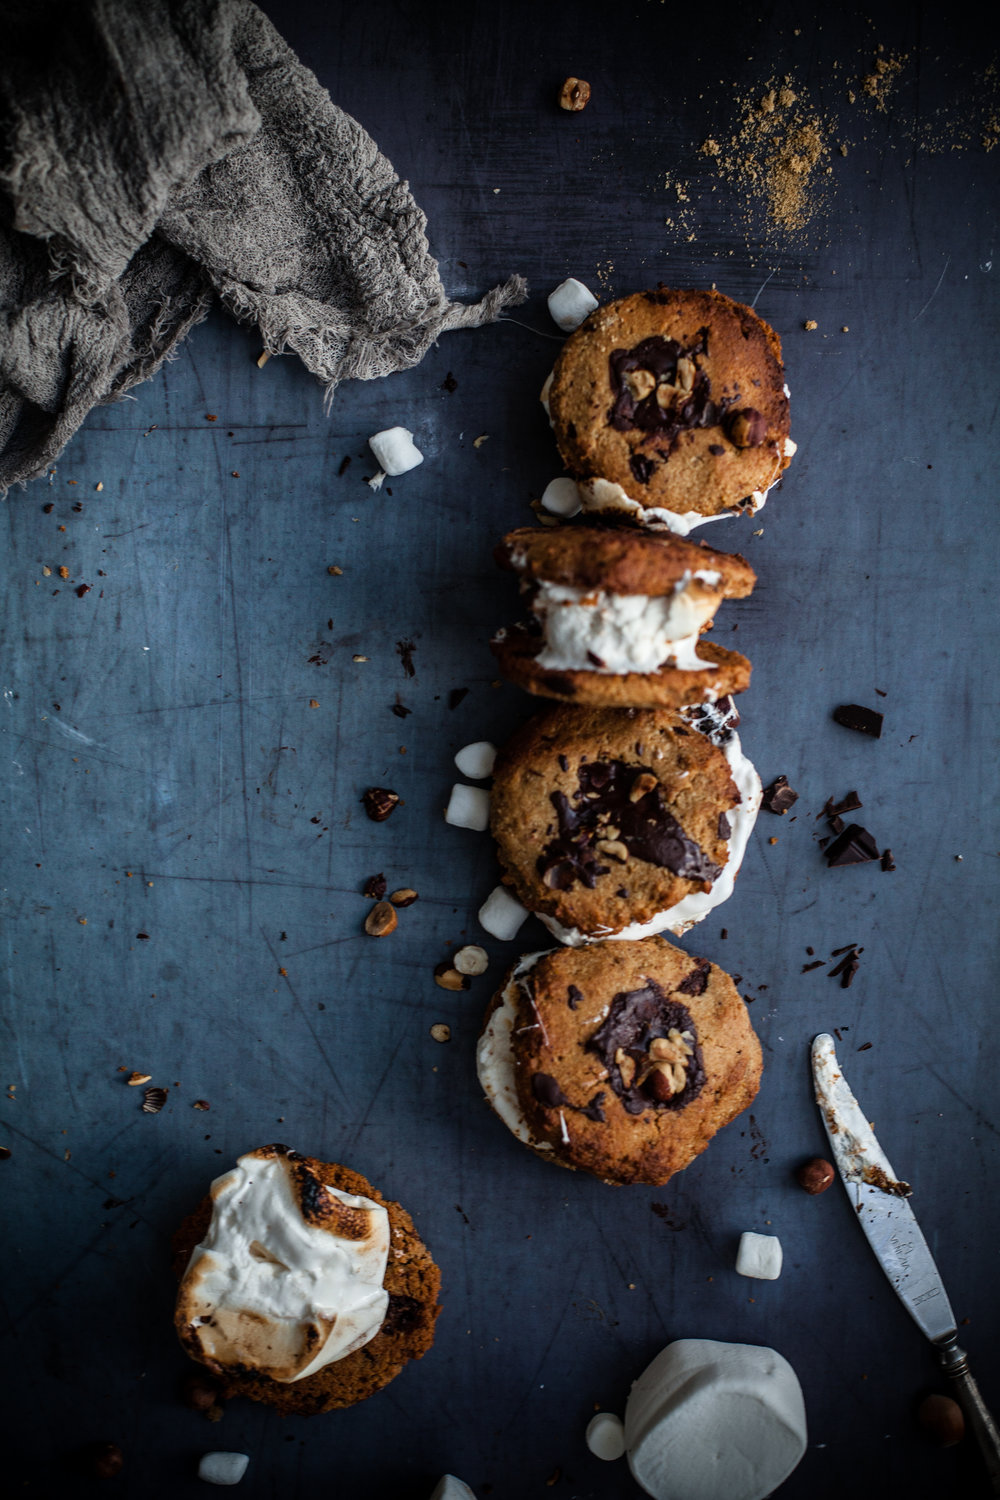 gooey choco chip cookies s'mores #glutenfree #vegan